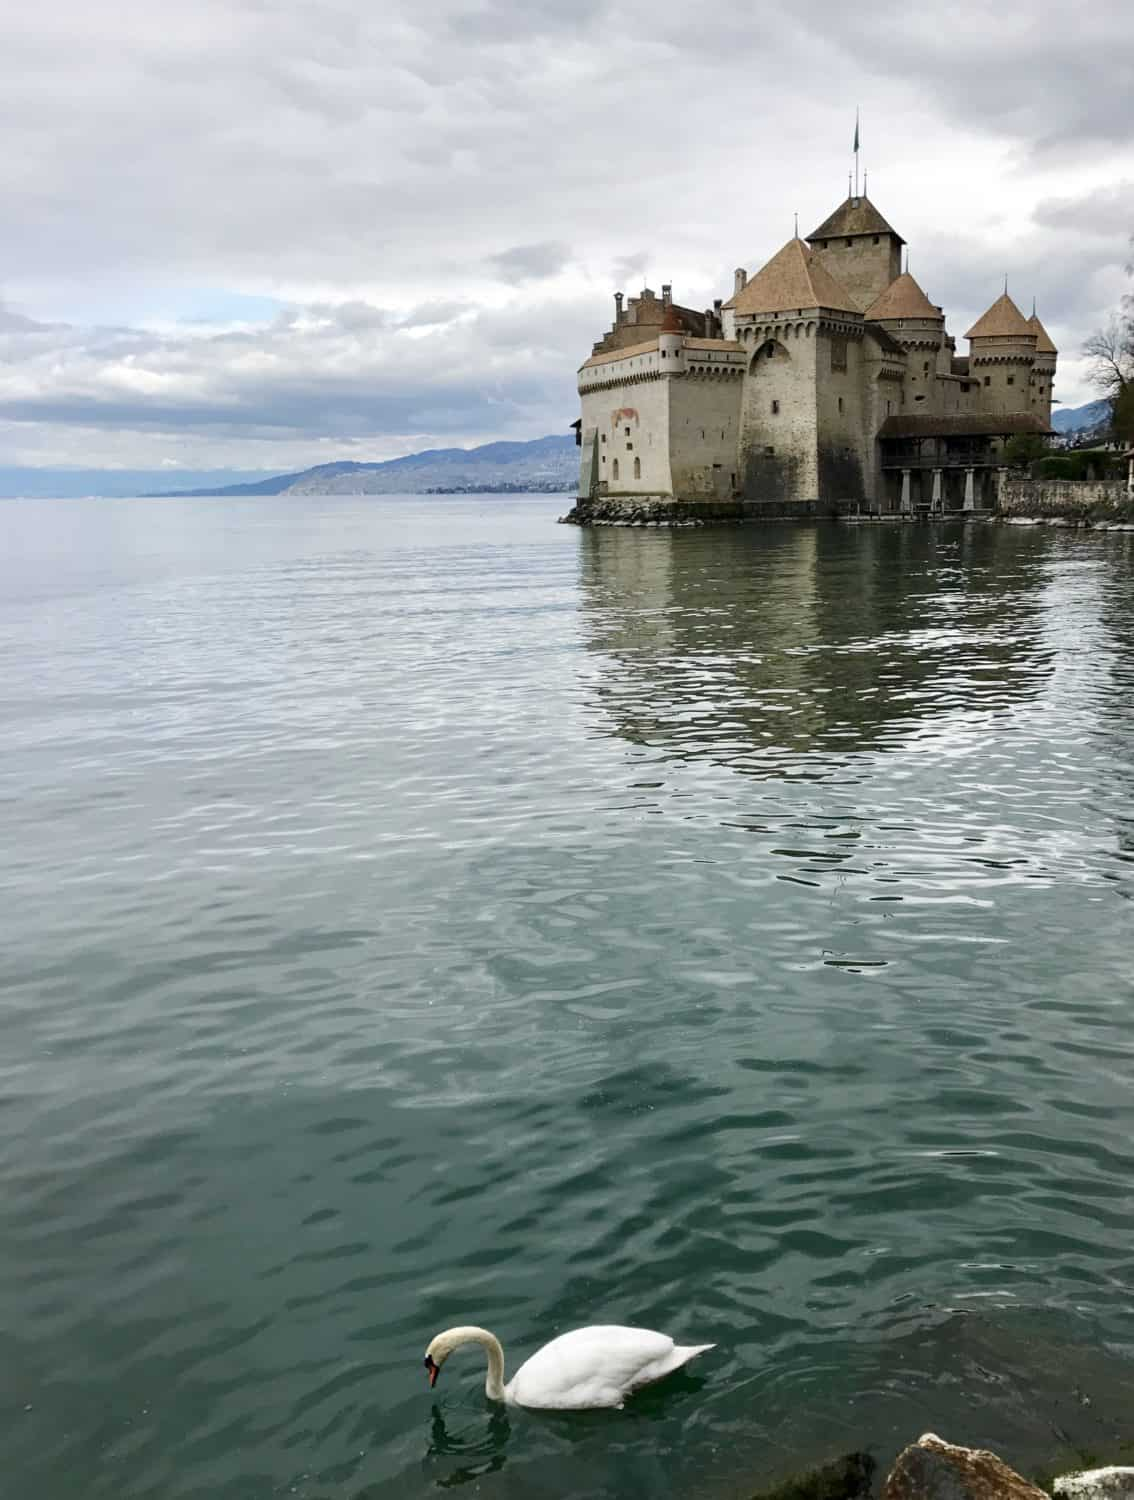 10+ Ideas for Day Trips from Geneva, Switzerland | Whether you're looking for history, culture, food, natural beauty, or adventure, Switzerland's got it all, and Geneva is a perfect base. There are so many things to do in the Lake Geneva area, from the Golden Pass train to Chateau Chillon, charming Luzern to chocolate and cheese tours. What to do in Geneva, Geneva day trip ideas, Switzerland day trips, Switzerland itinerary ideas.